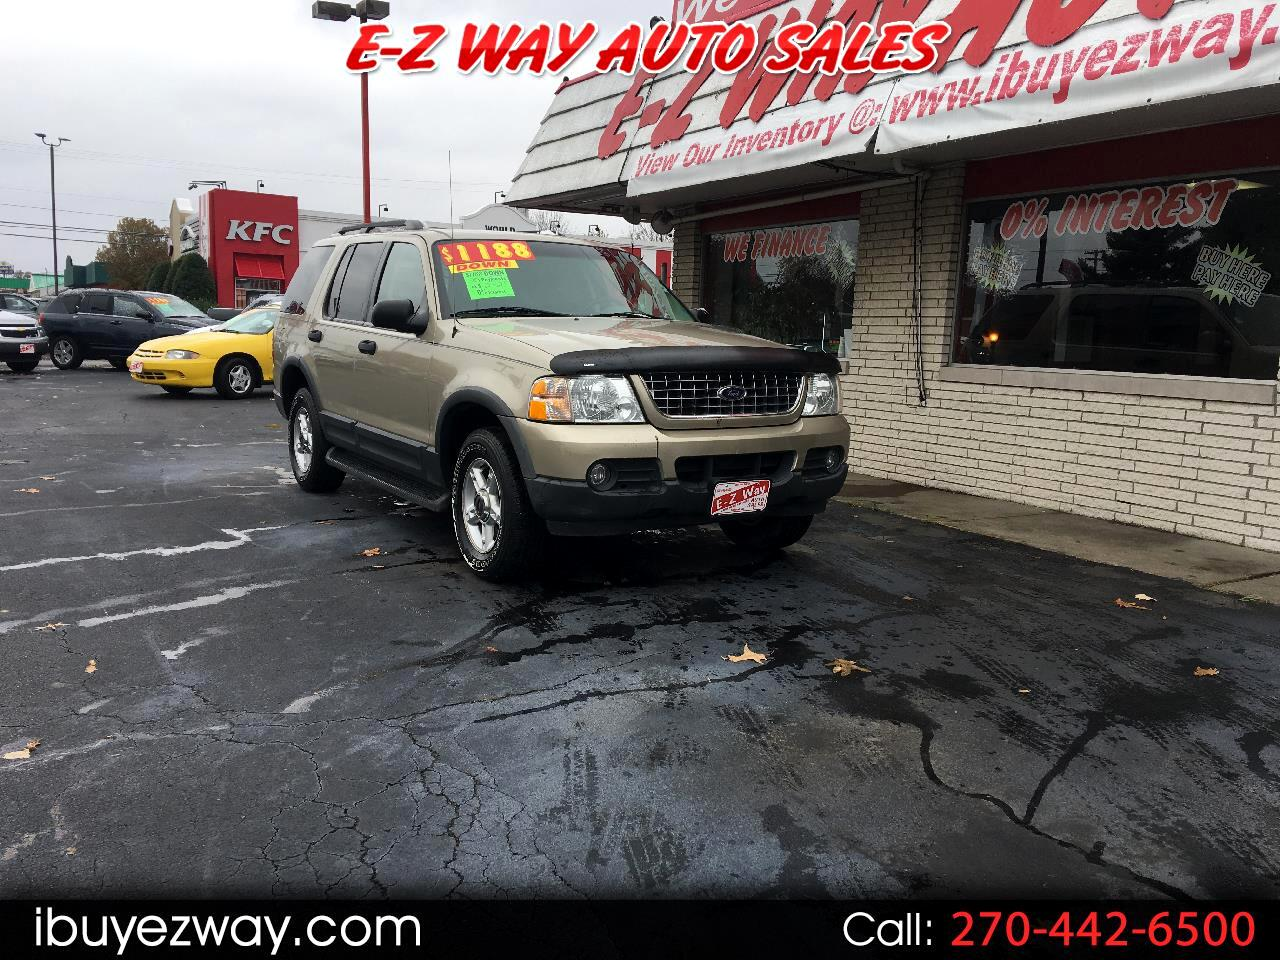 2003 Ford Explorer XLT 4.0L 4WD